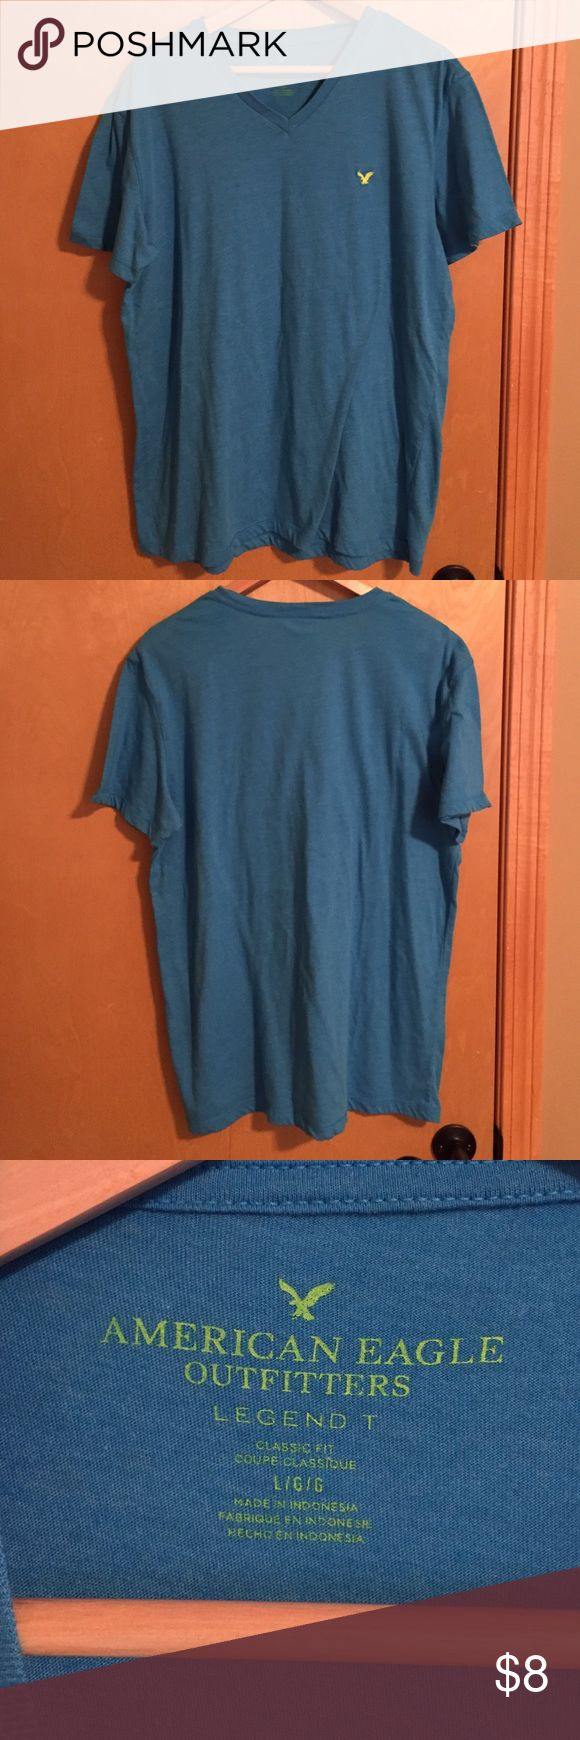 Men's American Eagle Large bright blue t-shirt Men's American Eagle Large bright blue t-shirt with neon yellow eagle logo- only worn a couple times American Eagle Outfitters Shirts Tees - Short Sleeve